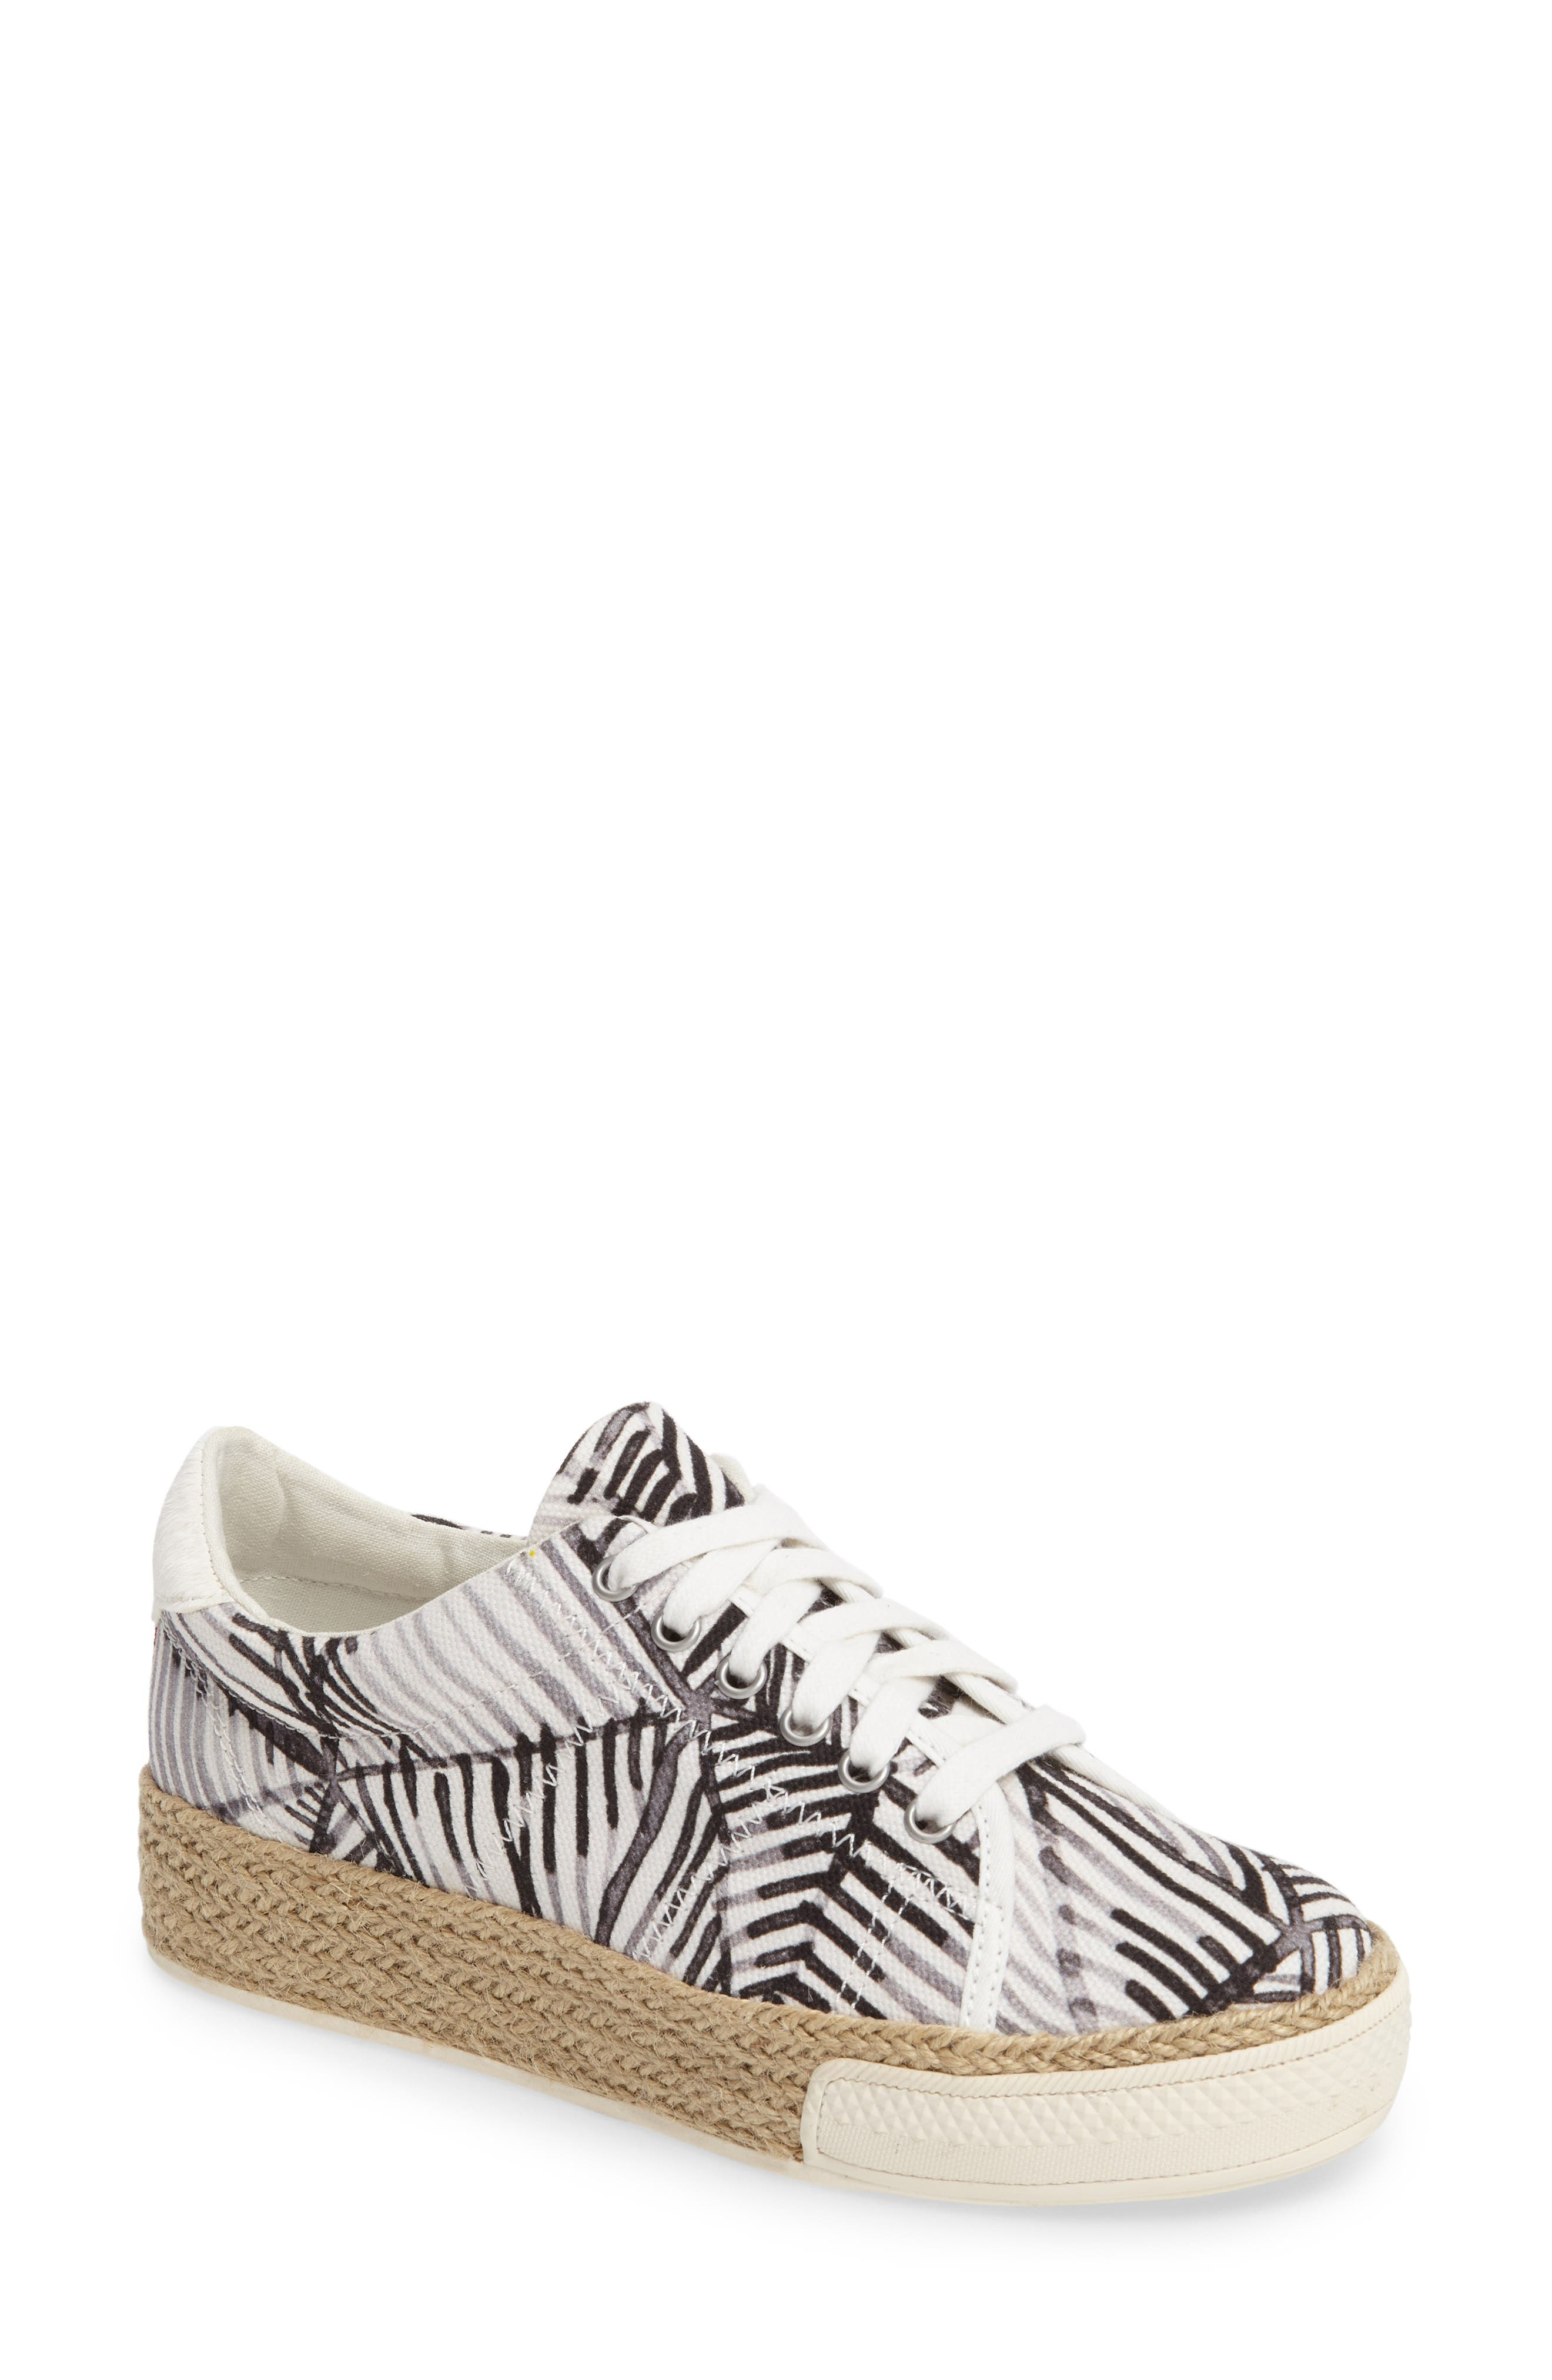 Tala Platform Sneaker,                         Main,                         color, 100